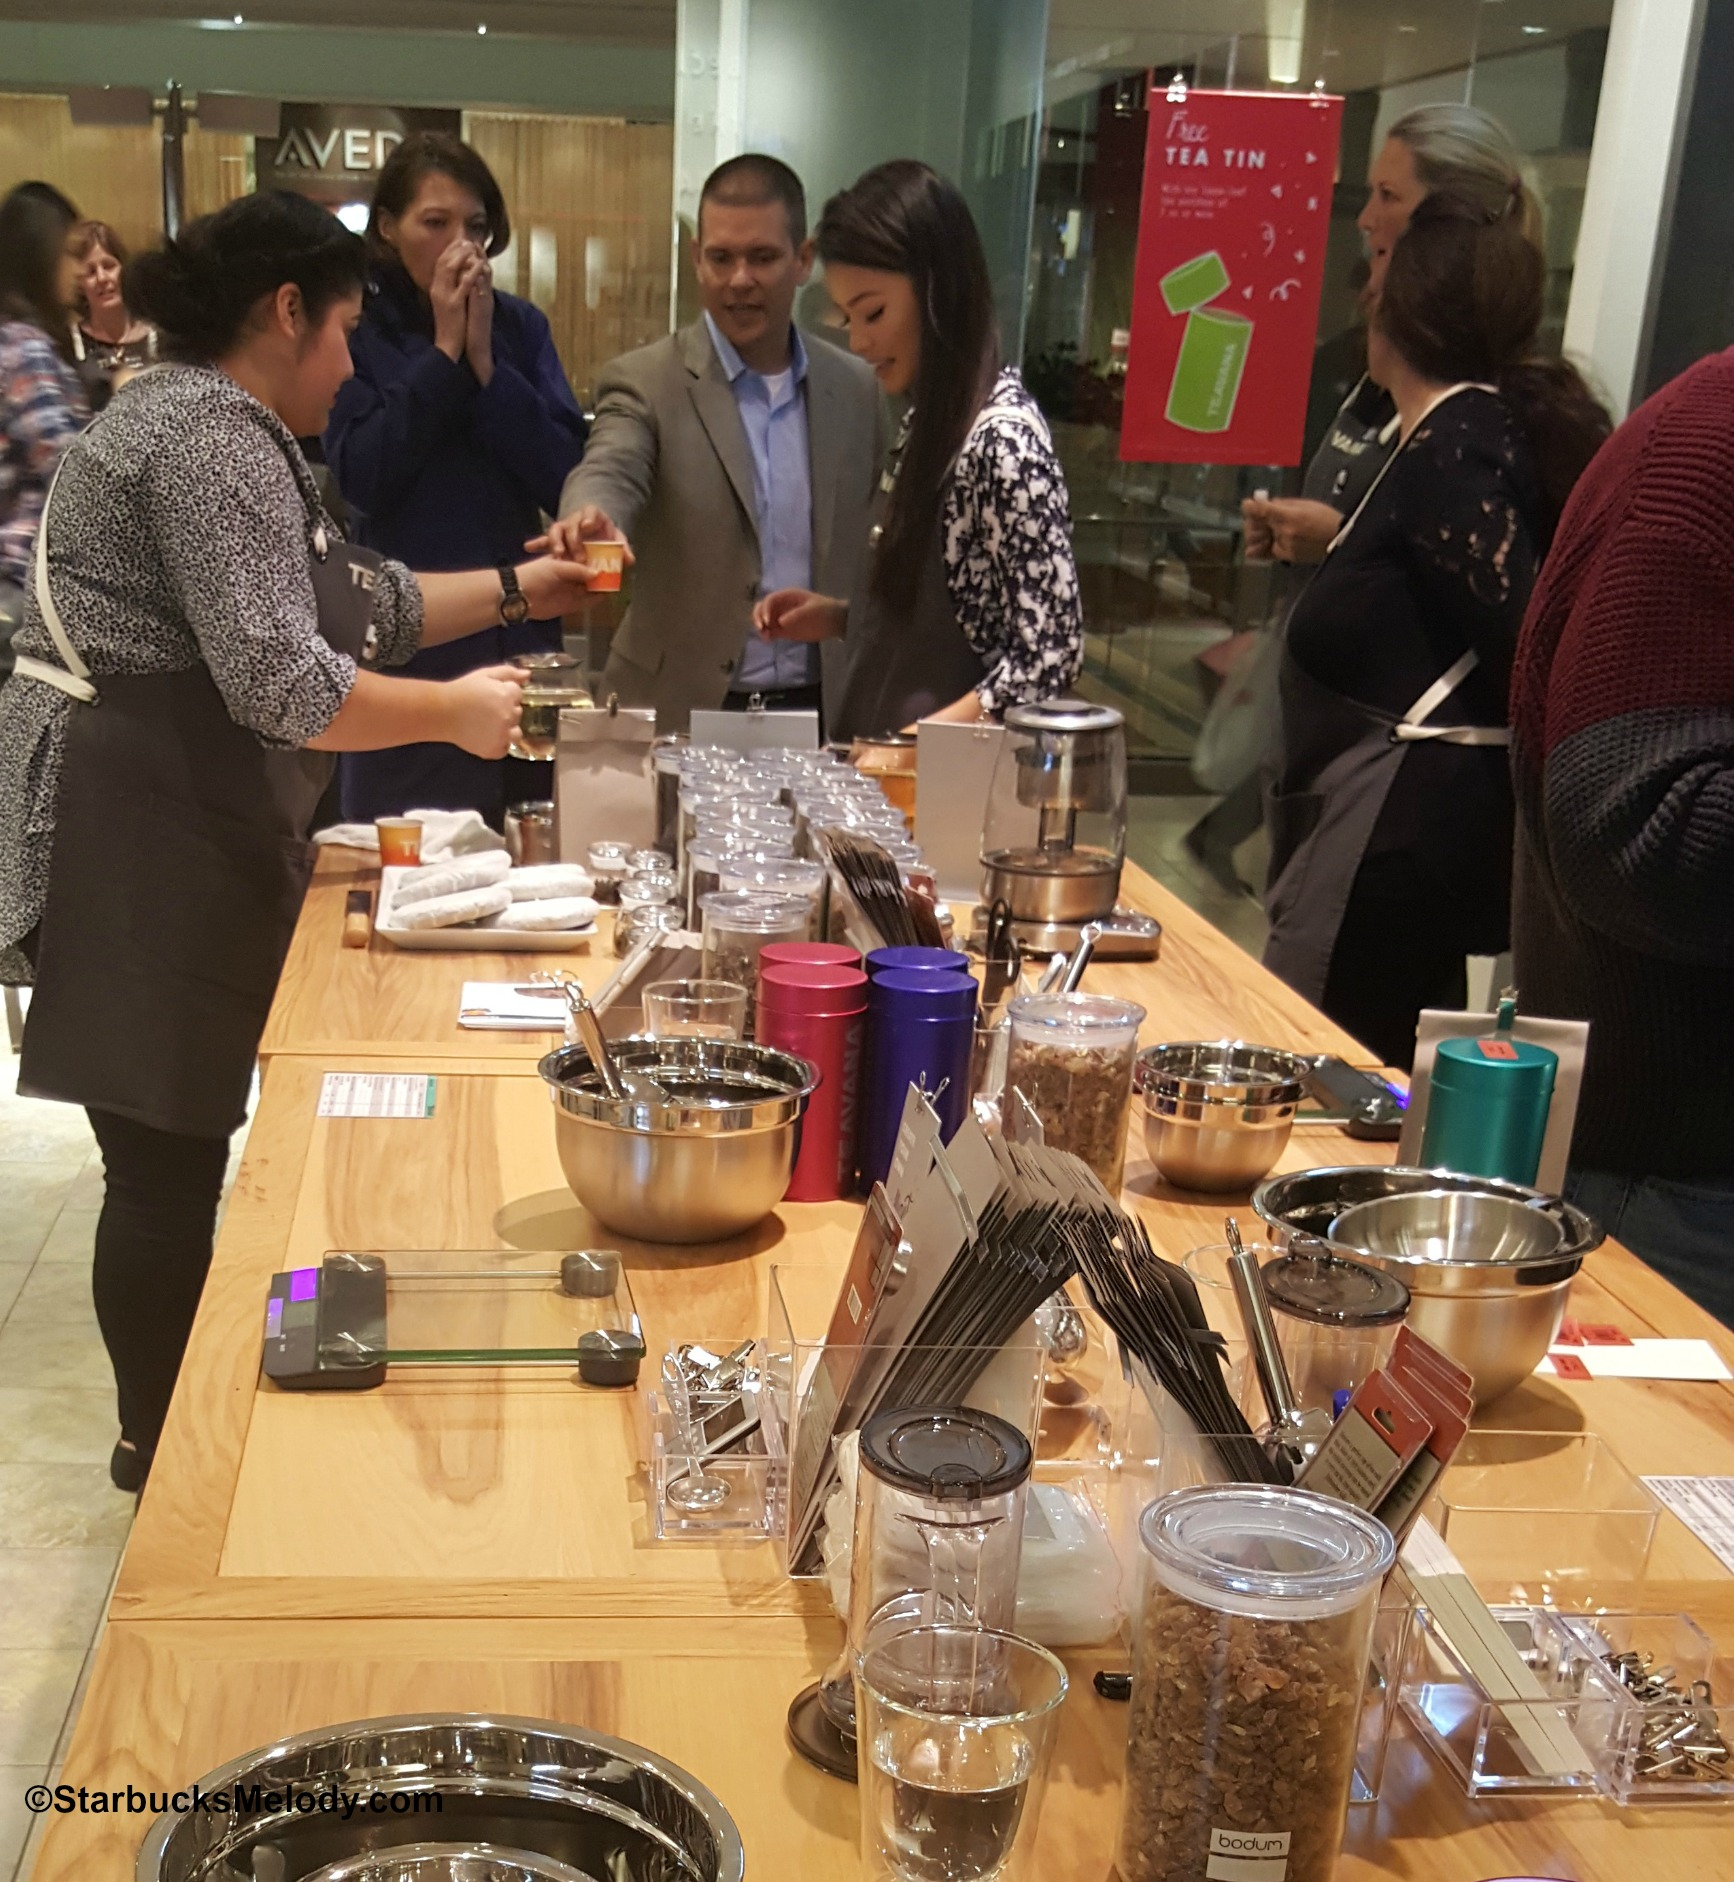 2 - 1 - 20151116_182913[1] bellevue teavana sampling tea.jpg